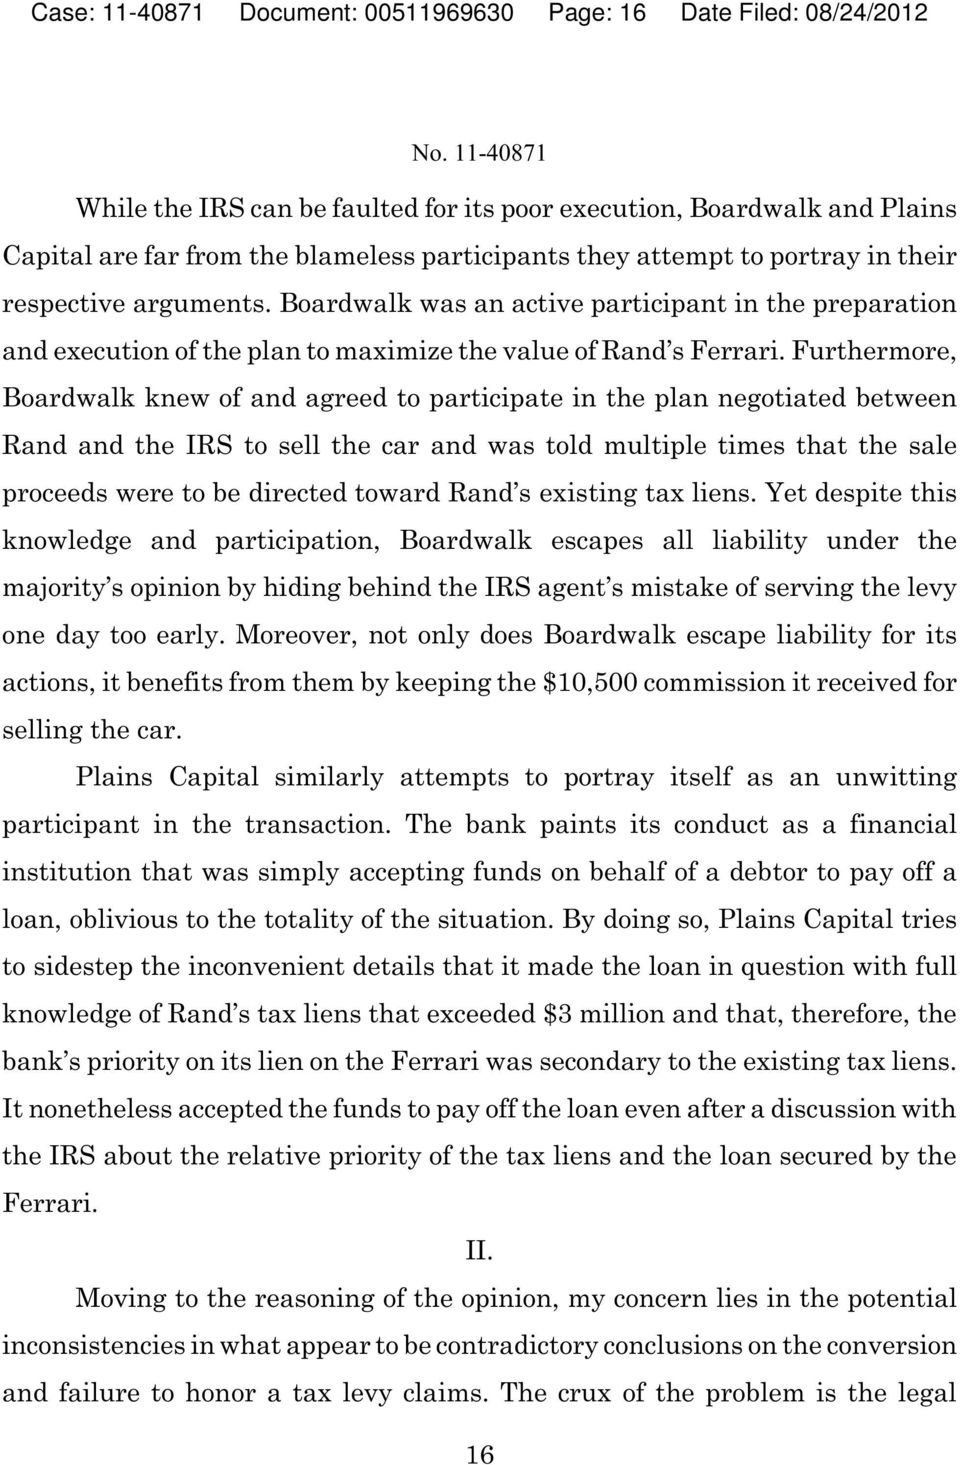 Furthermore, Boardwalk knew of and agreed to participate in the plan negotiated between Rand and the IRS to sell the car and was told multiple times that the sale proceeds were to be directed toward